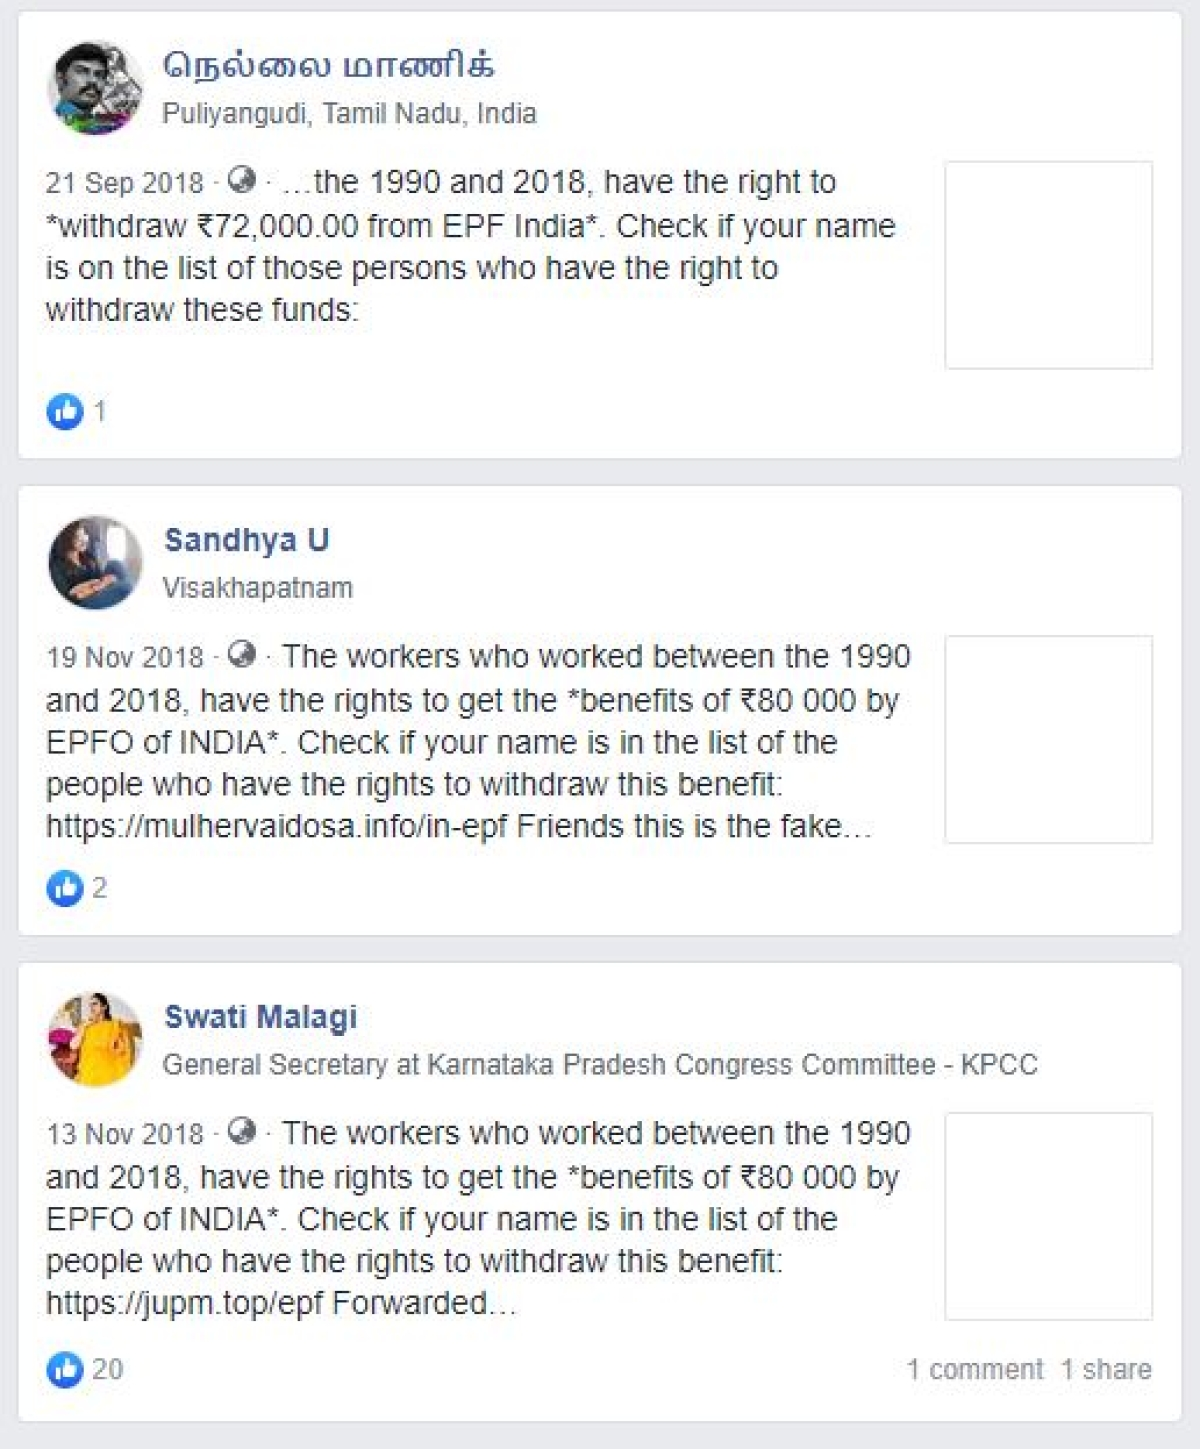 EPFO Rs  80,000 Benefits and Scheme: Fake Message About EPFO